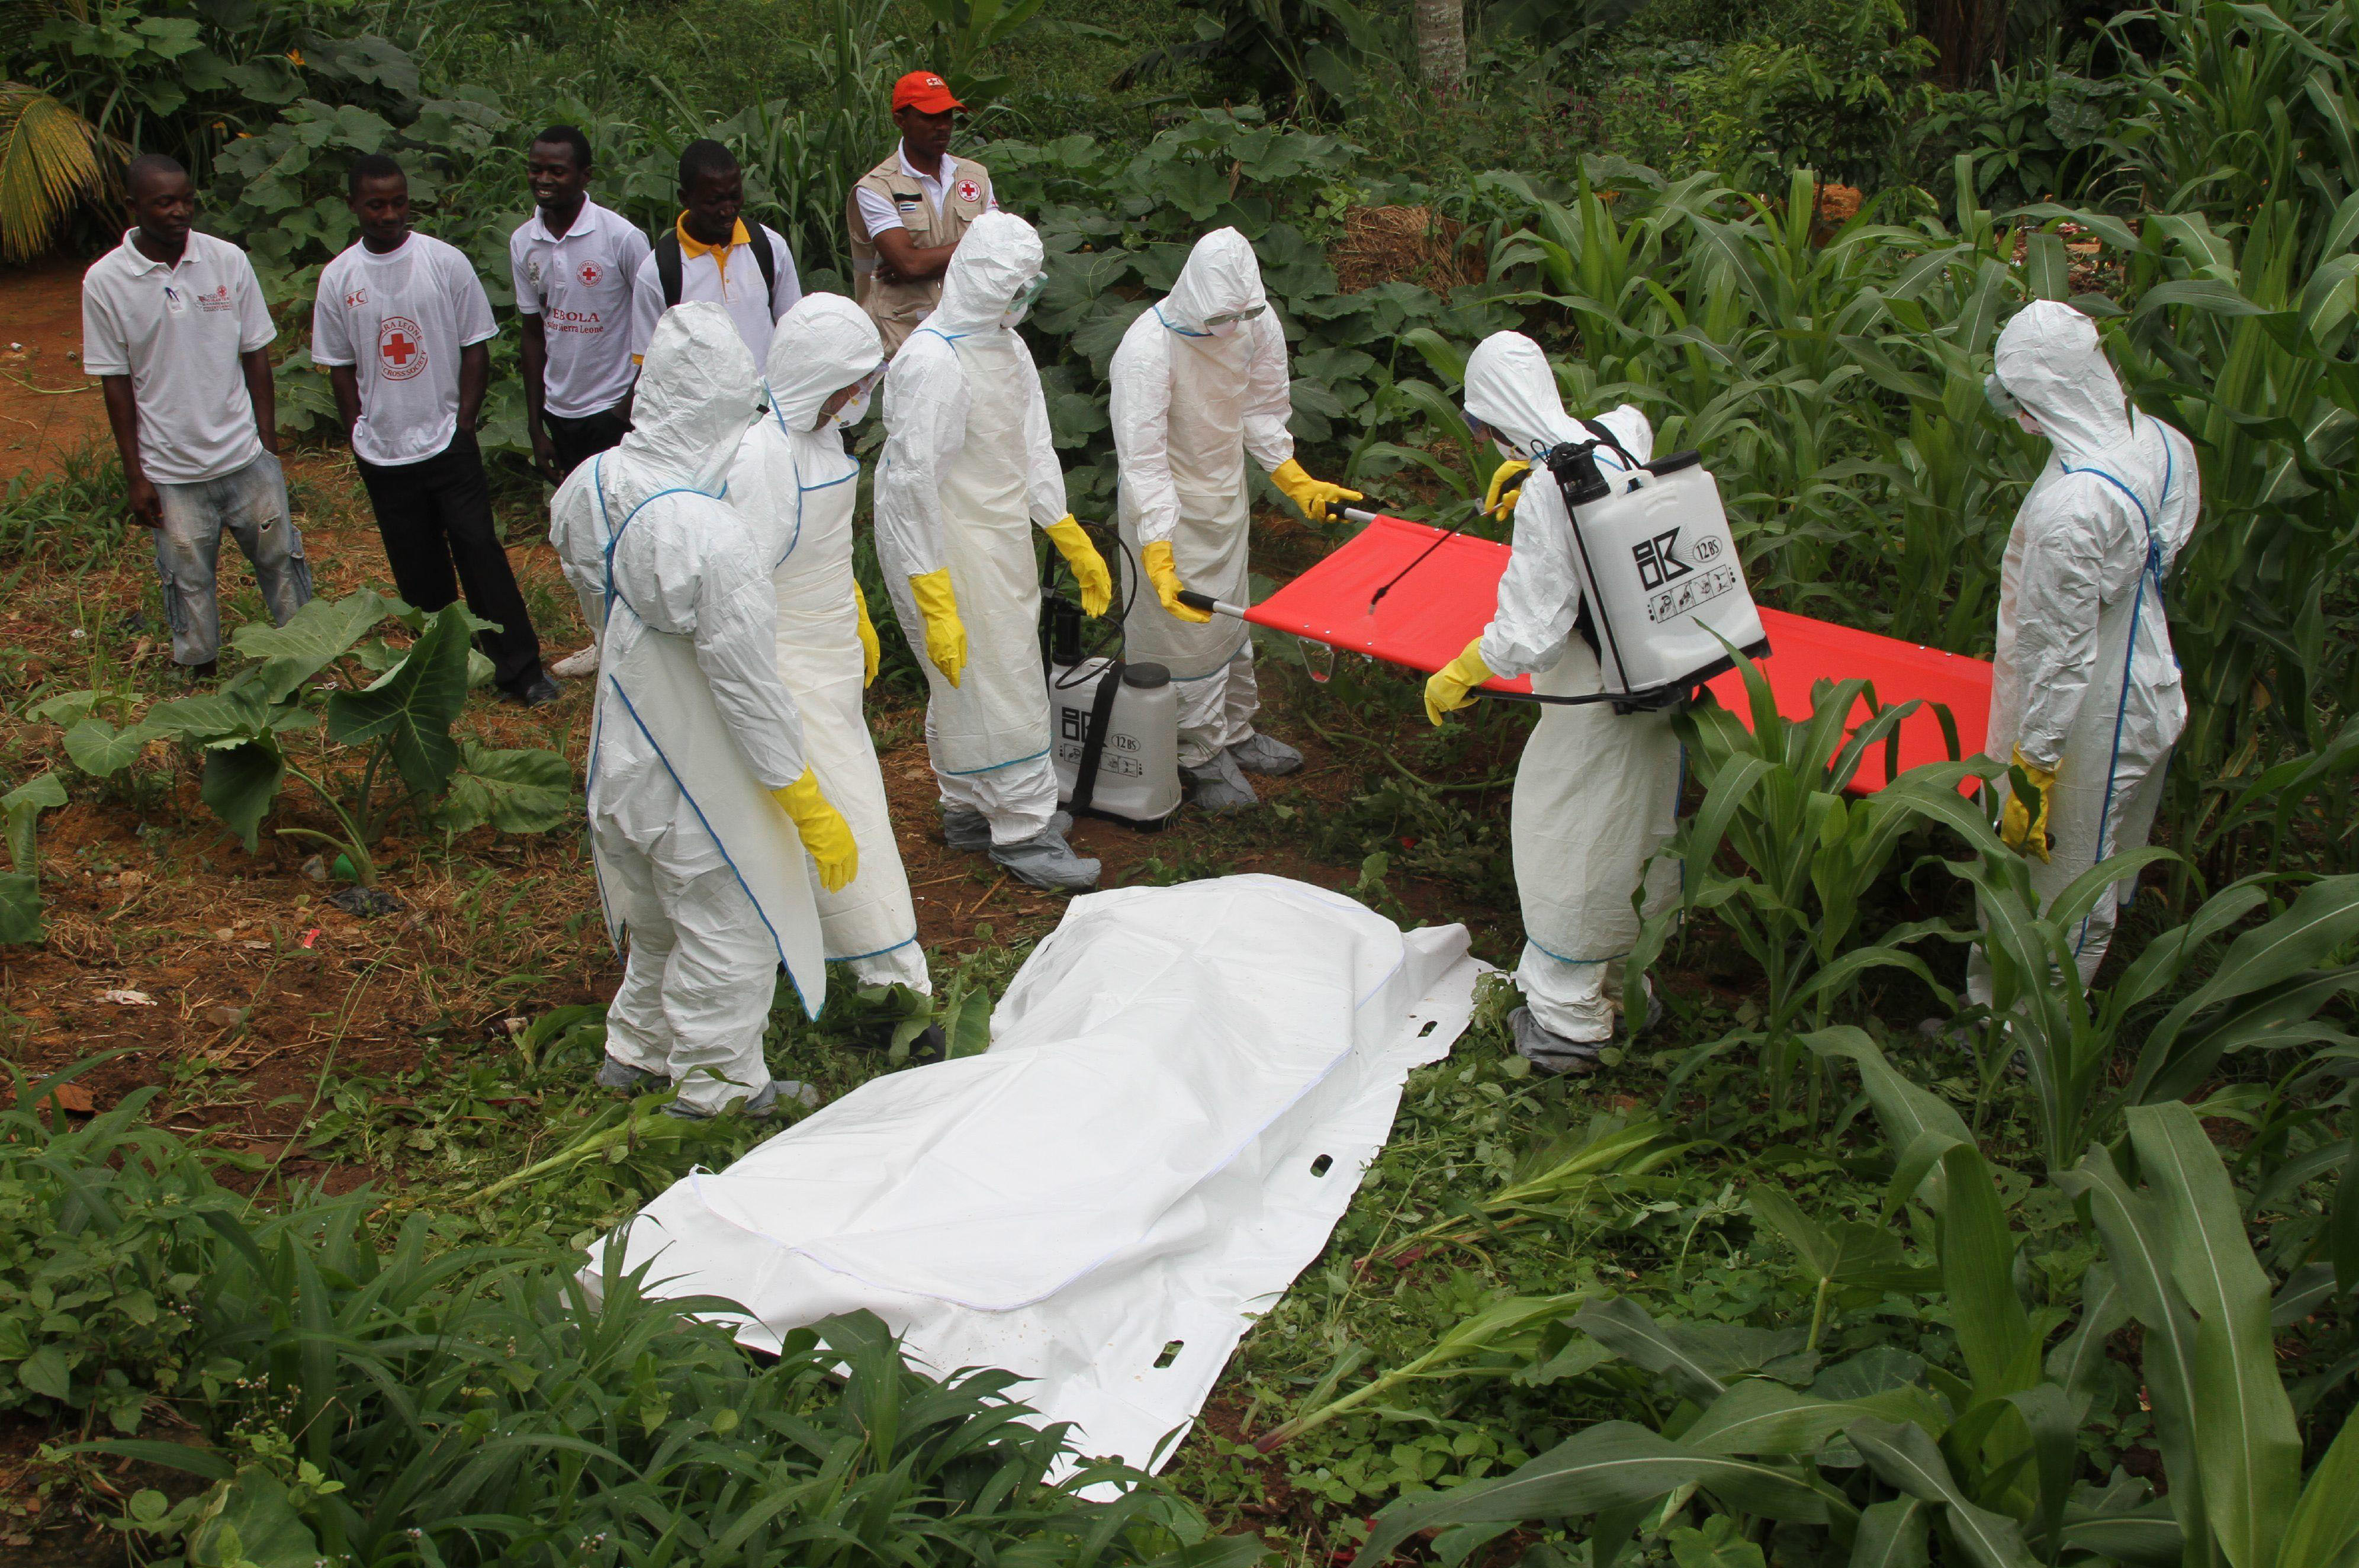 Health workers prepare to carry the body of an Ebola virus victim in Kailahun, Sierra Leone. PHOTO: REX FEATURES